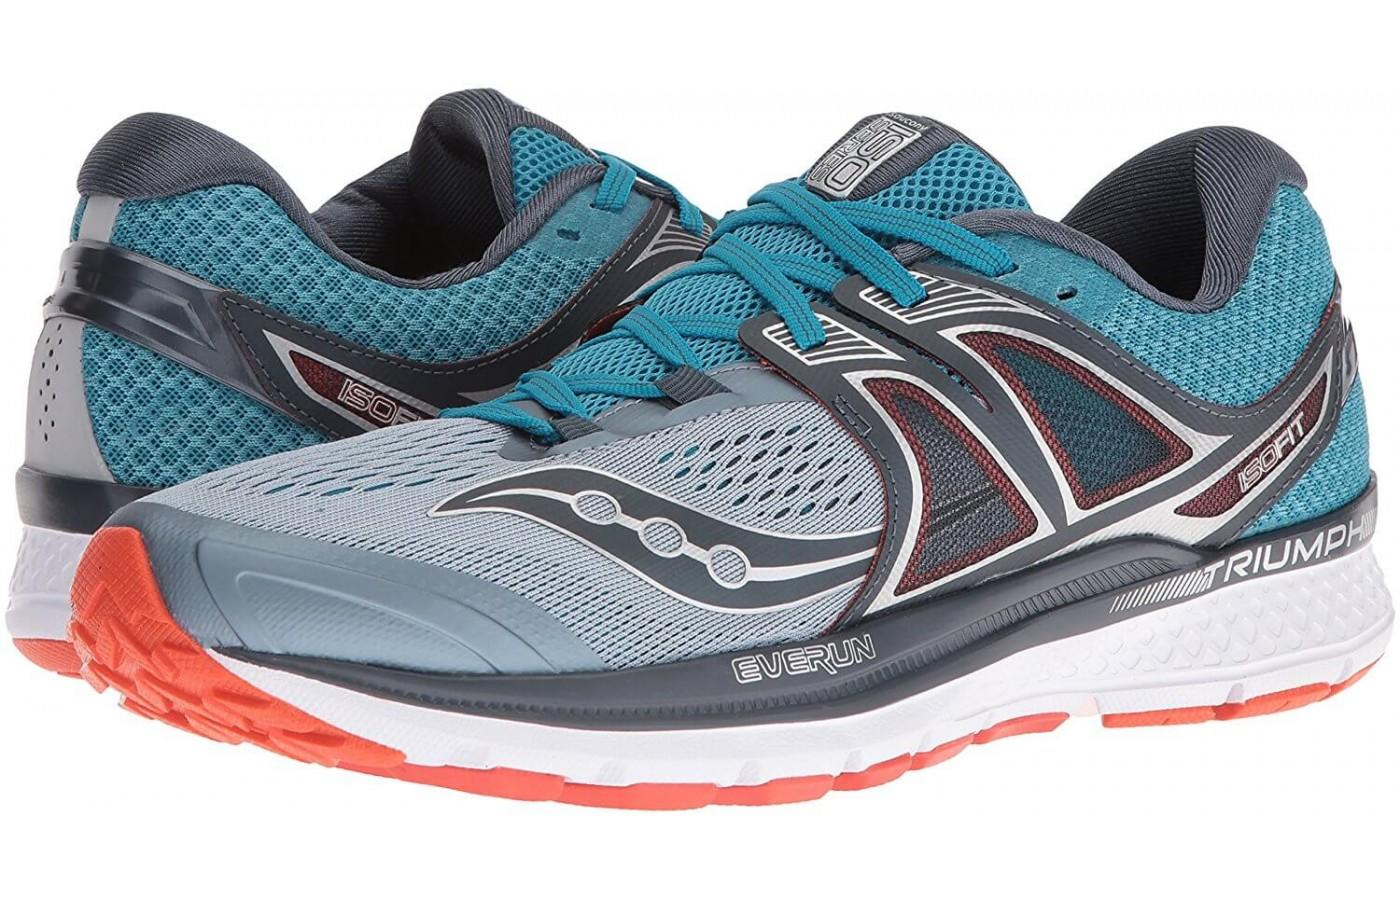 A pair of Saucony Triumph ISO 3 running shoes